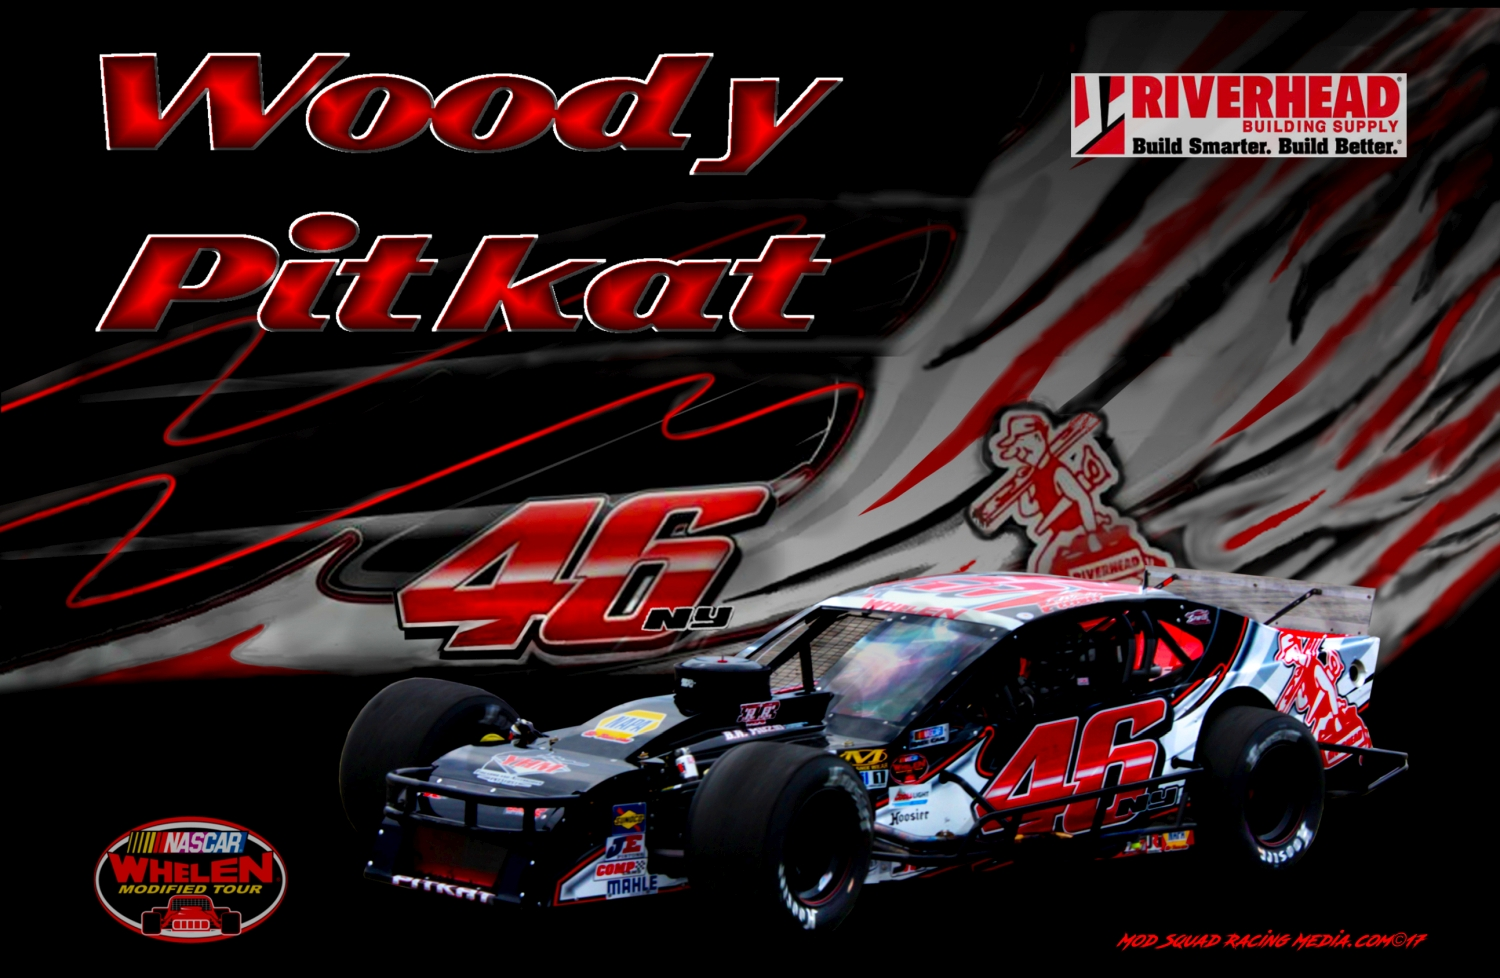 Pitkat Front of Hero Card